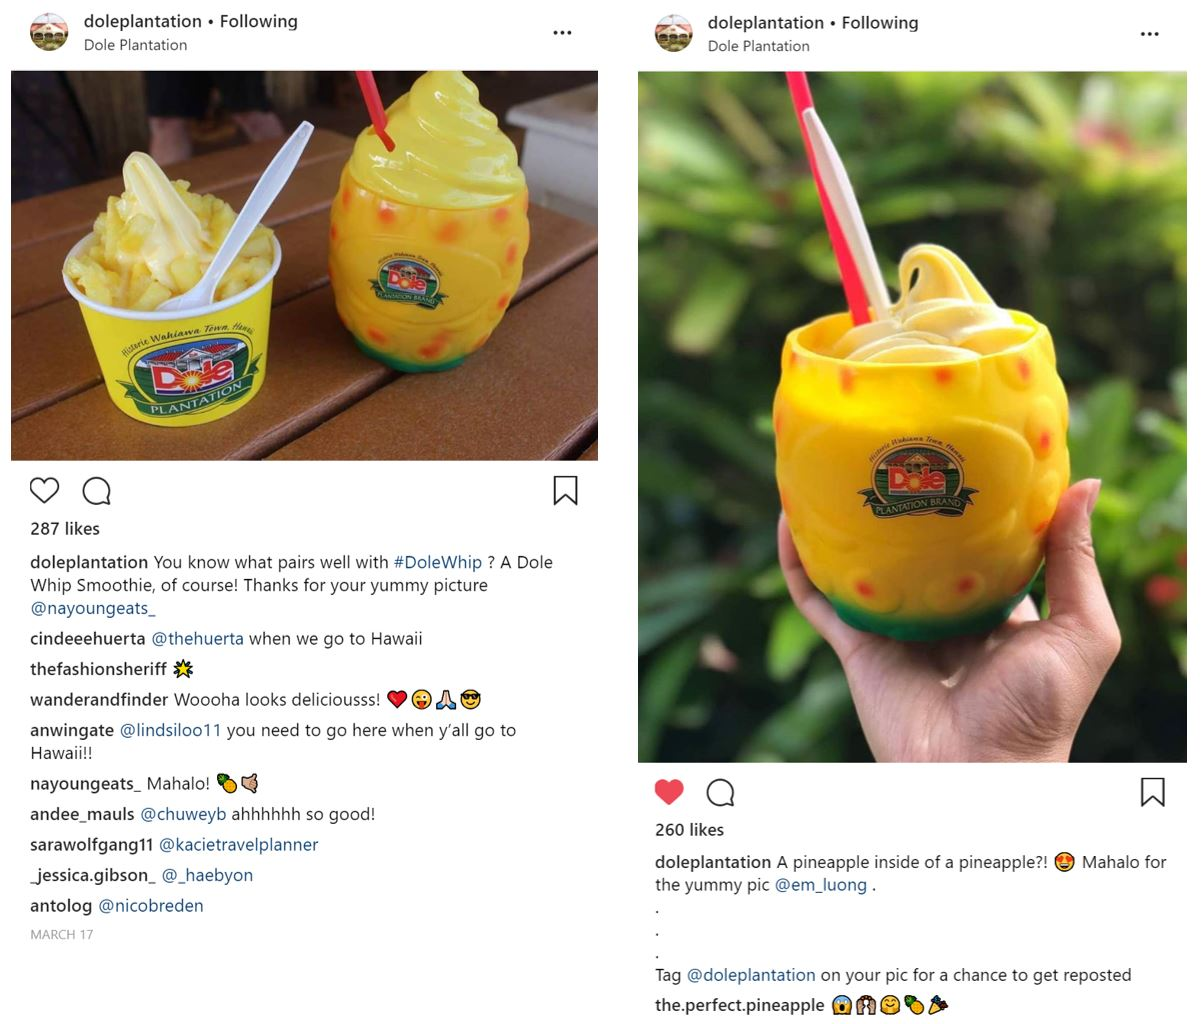 Dole Plantation Repost Examples